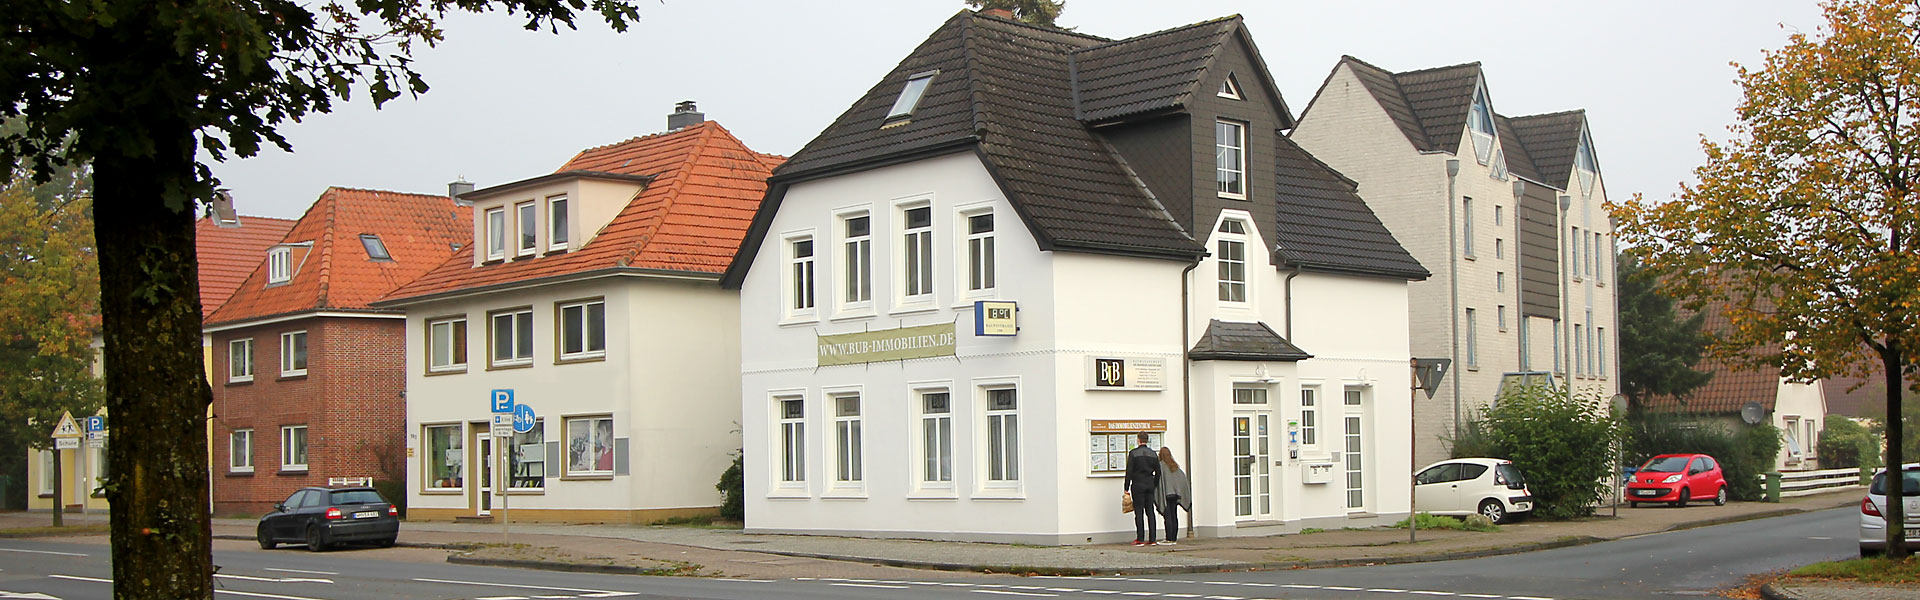 BUB - Ihr Immobilien-Partner in Oldenburg